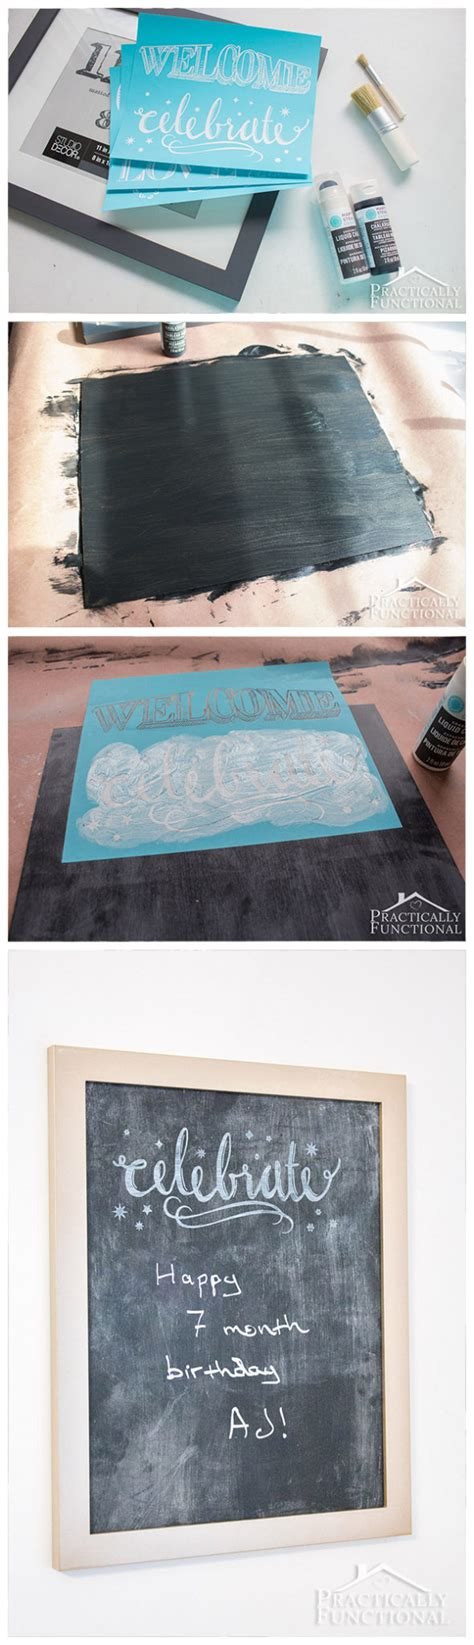 diy chalkboard duster diy chalkboard sign